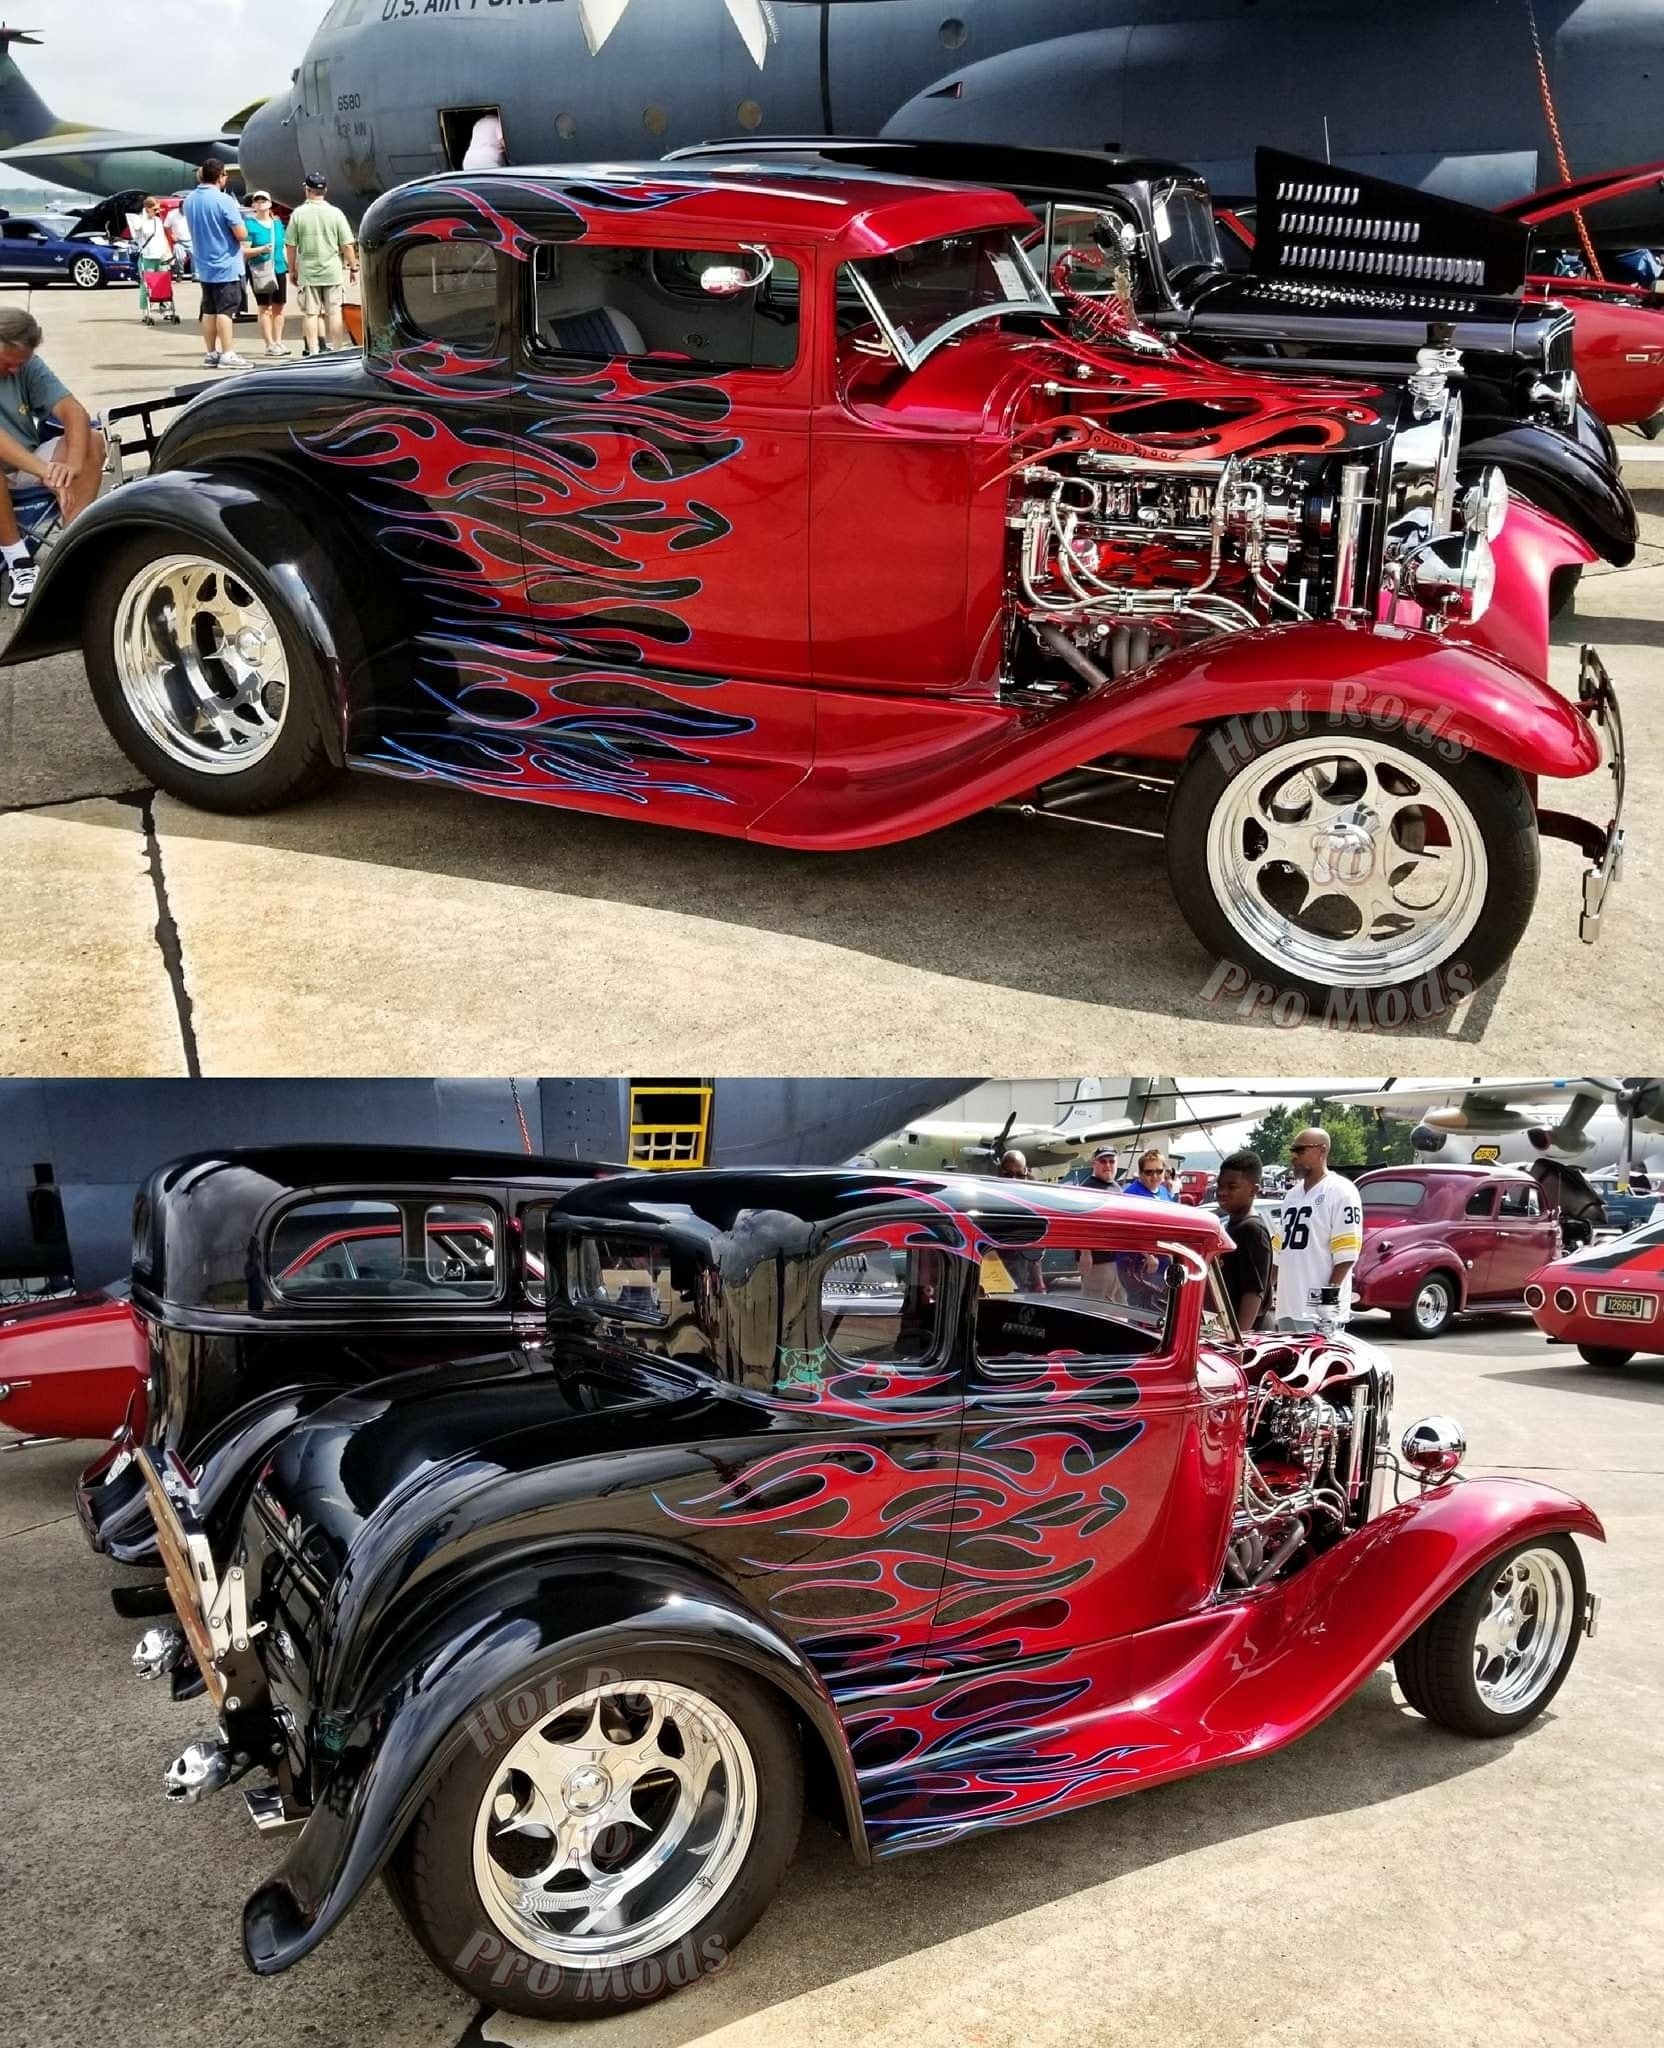 Pin by alan braswell on cars pinterest hot rods street rods